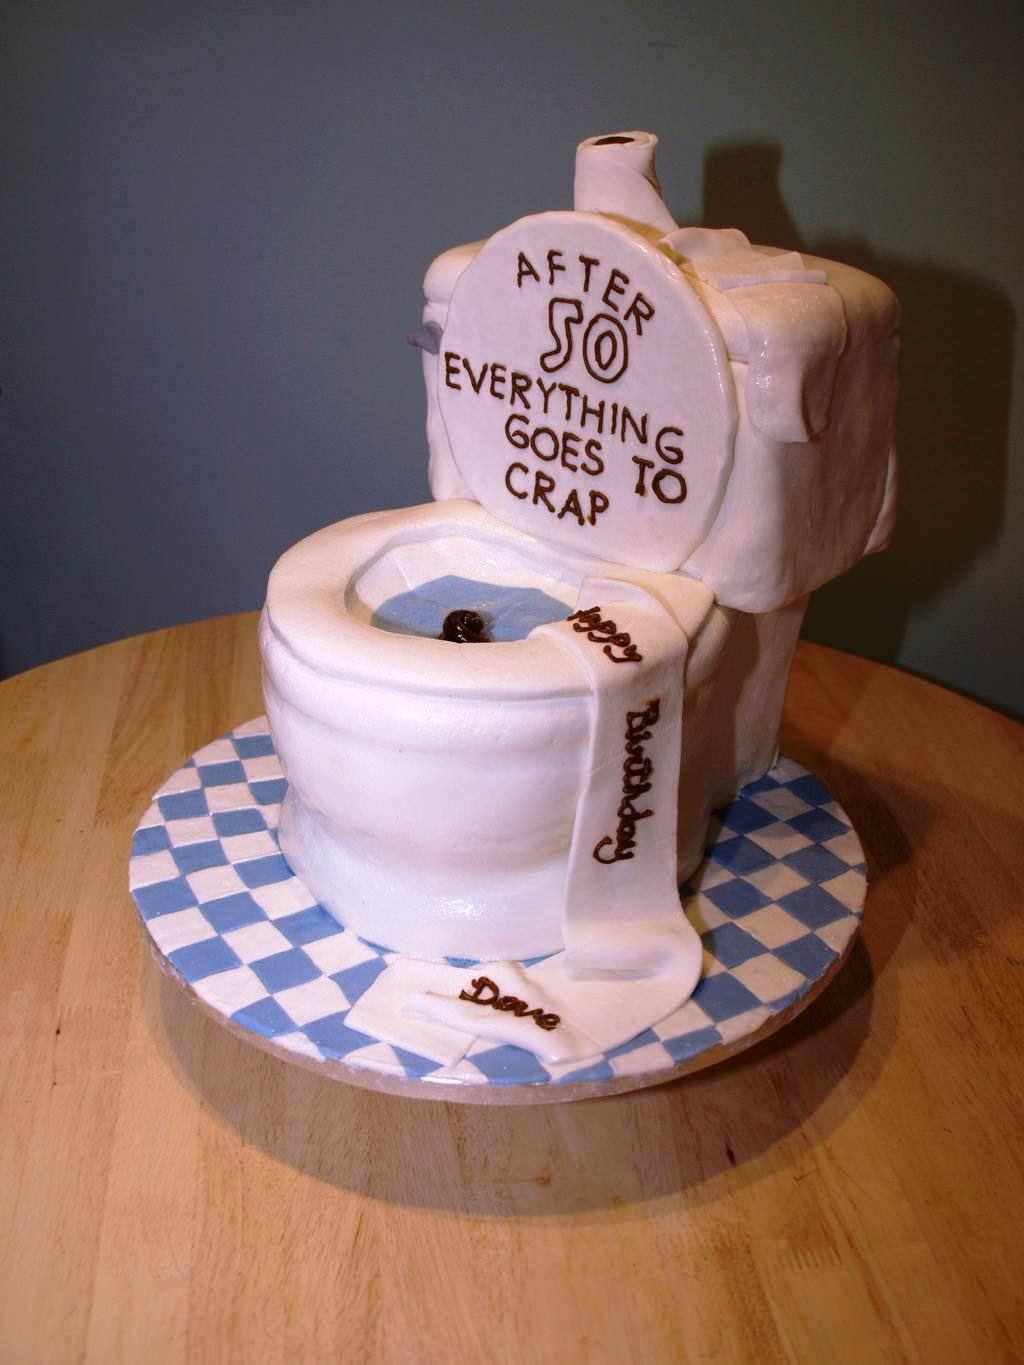 50 Birthday Cake Ideas 50th Cakes For Men The Funny Protoblogr Design